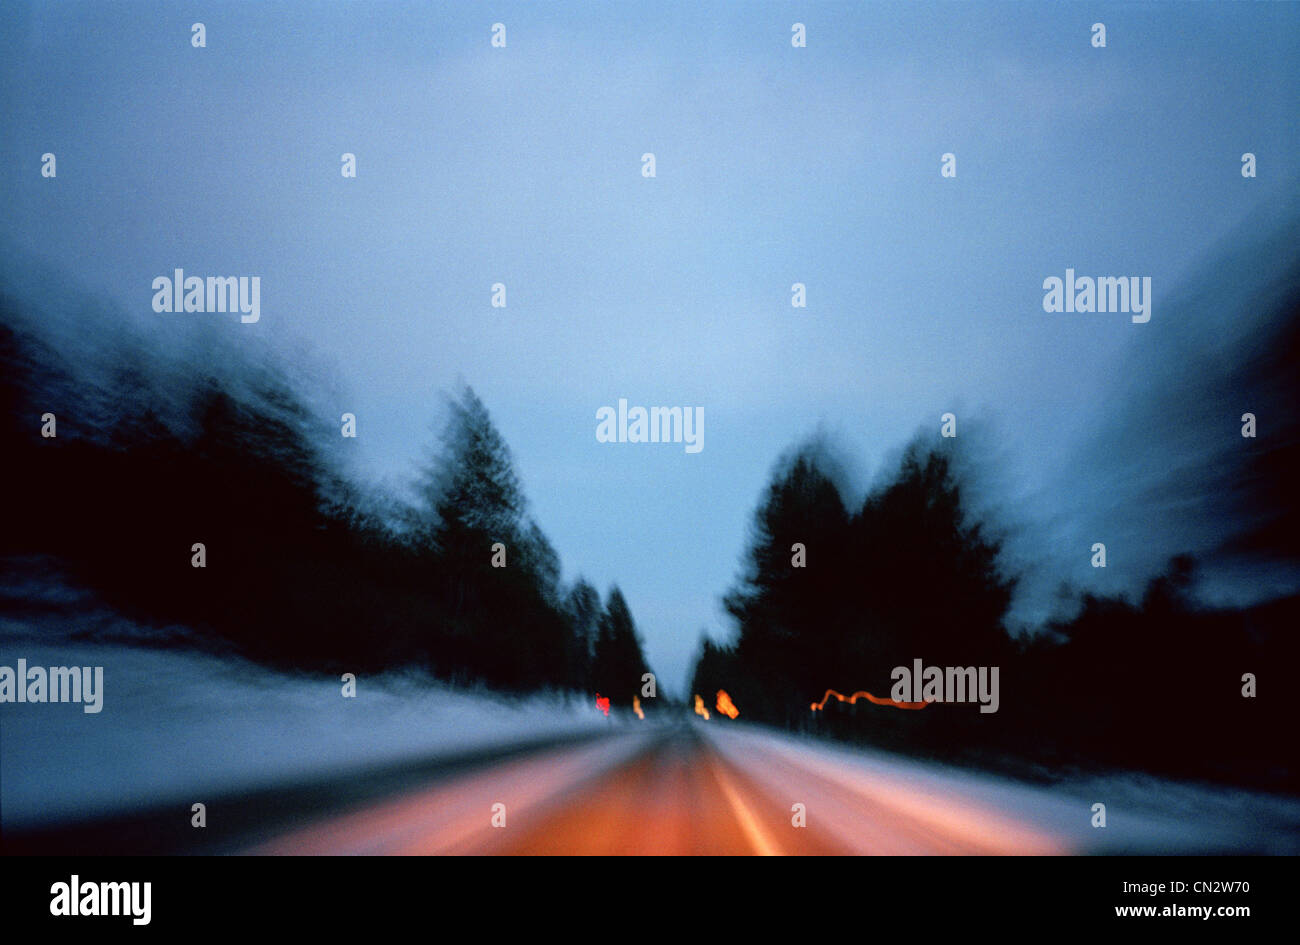 Blurry road in the evening - Stock Image